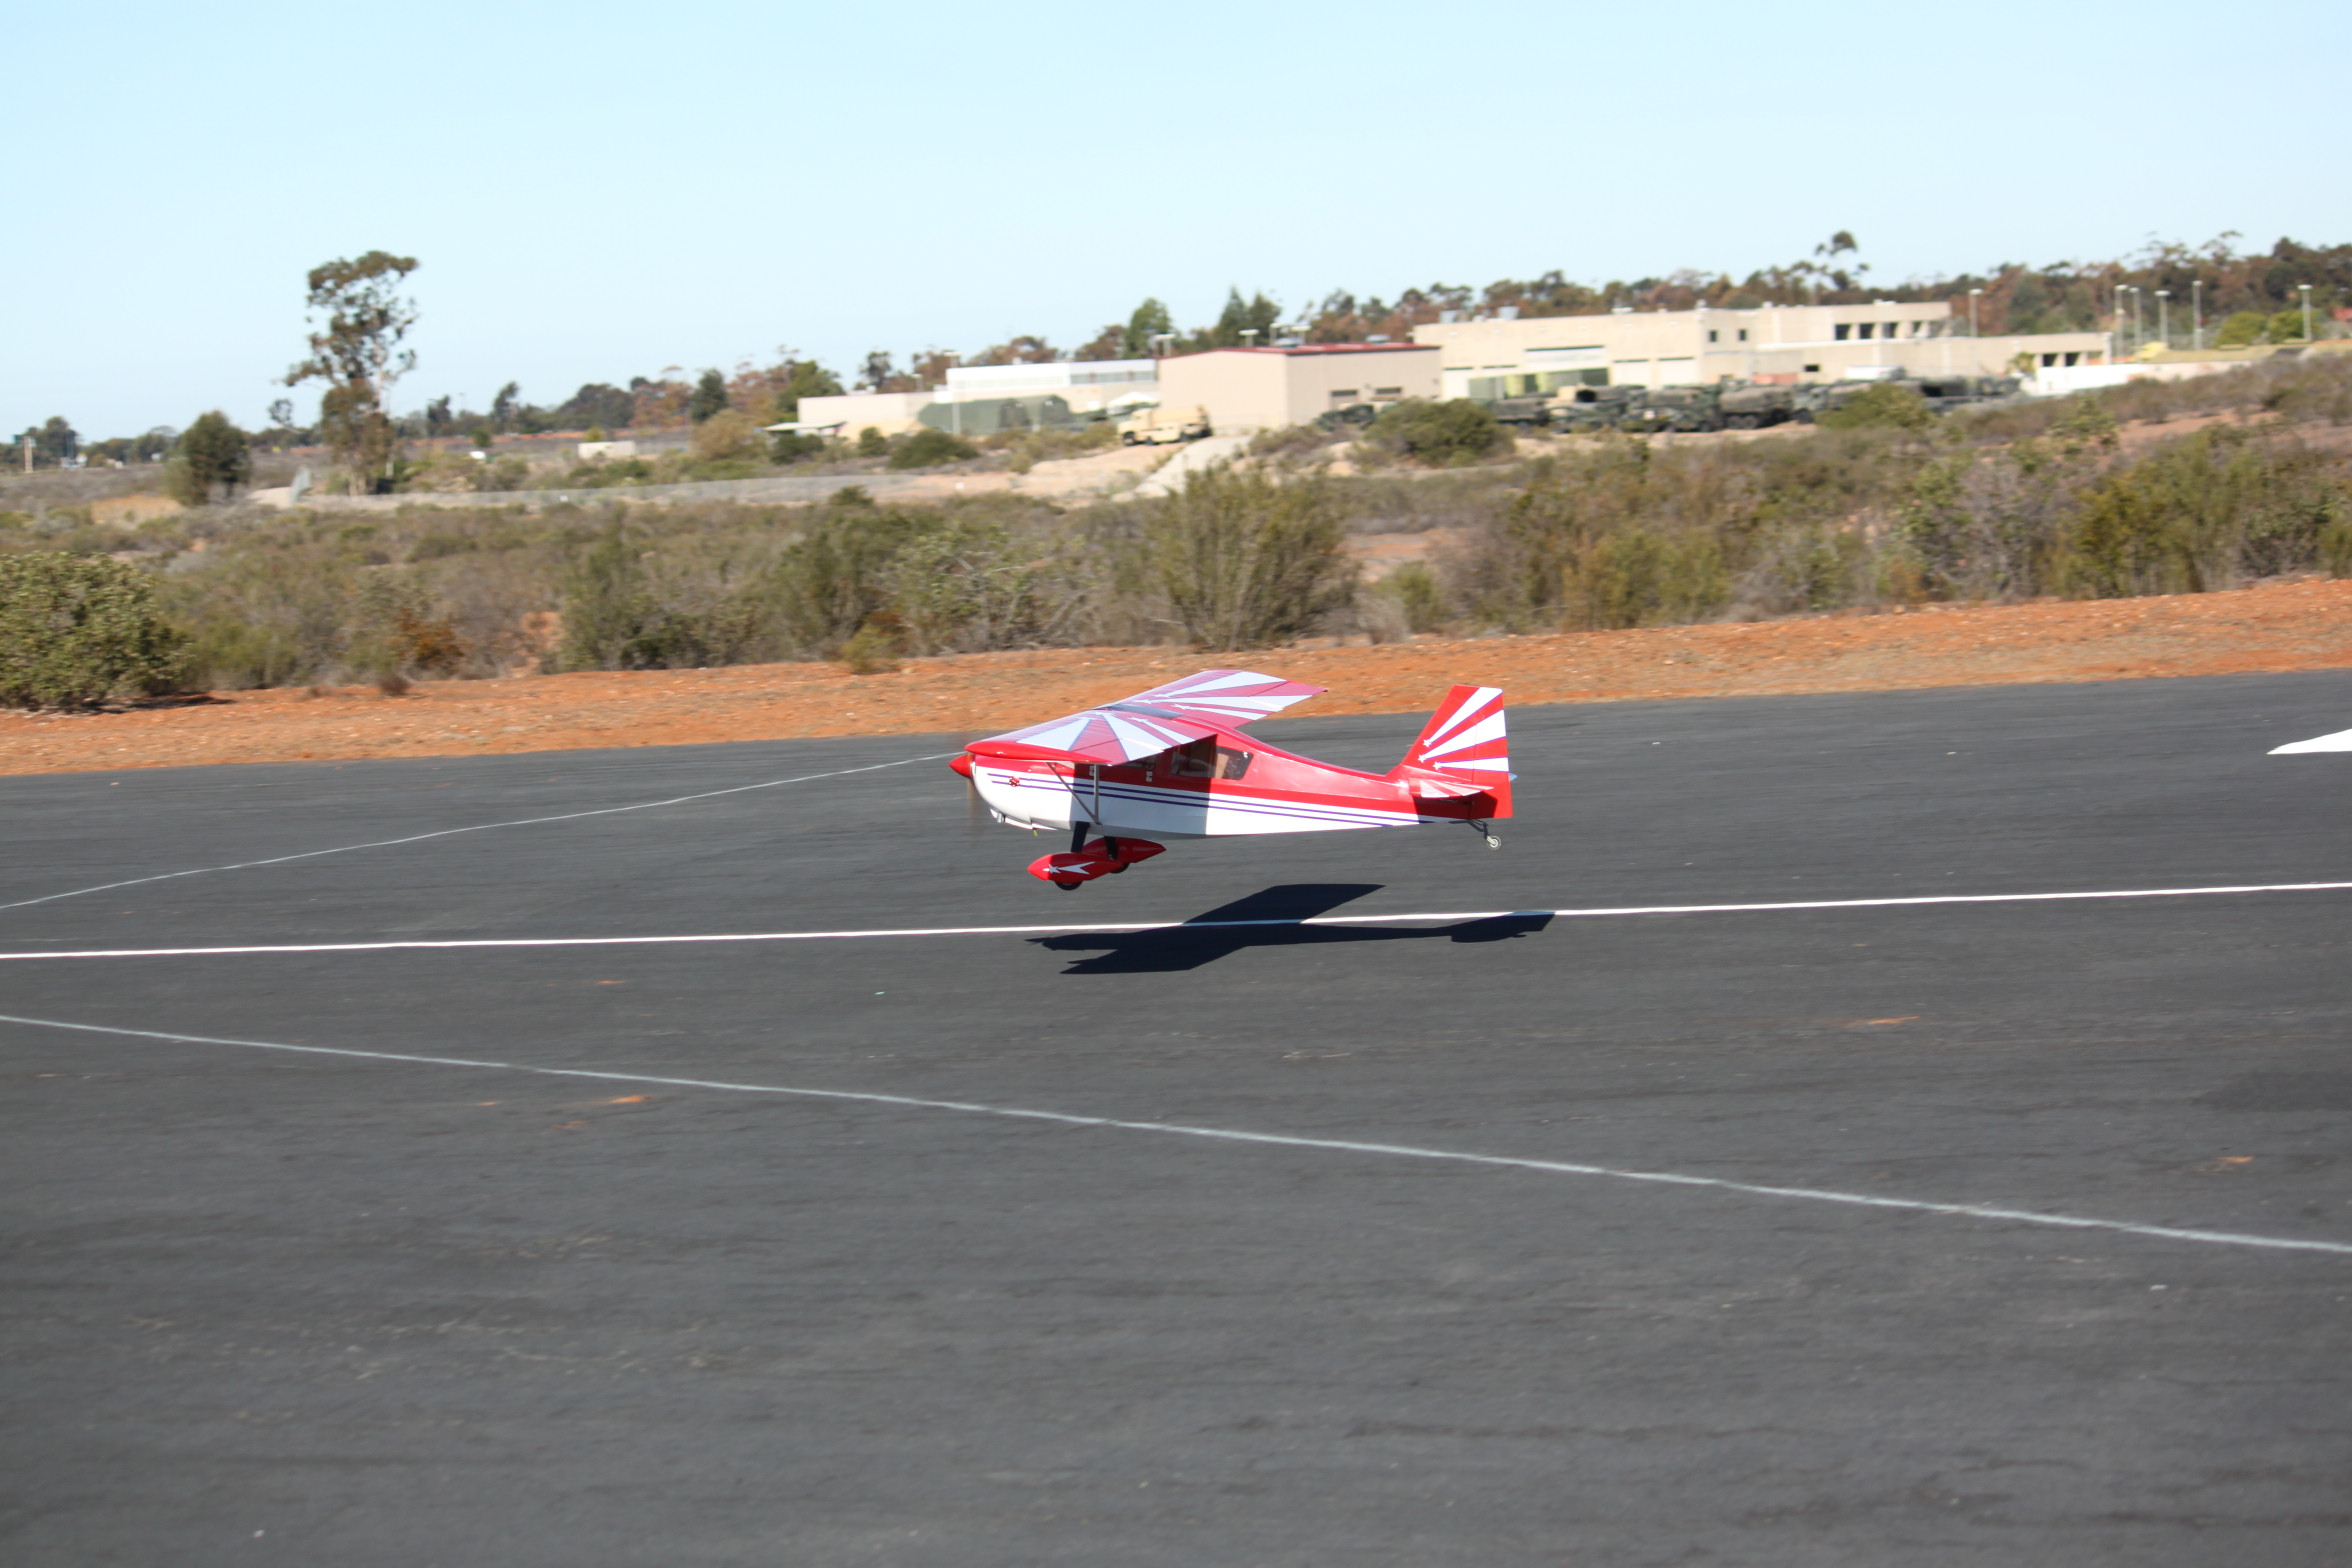 online store 0b344 c39ac My is 25% Decathlon from Giant scale model powered with AGM 30cc, just  maiden fly last week